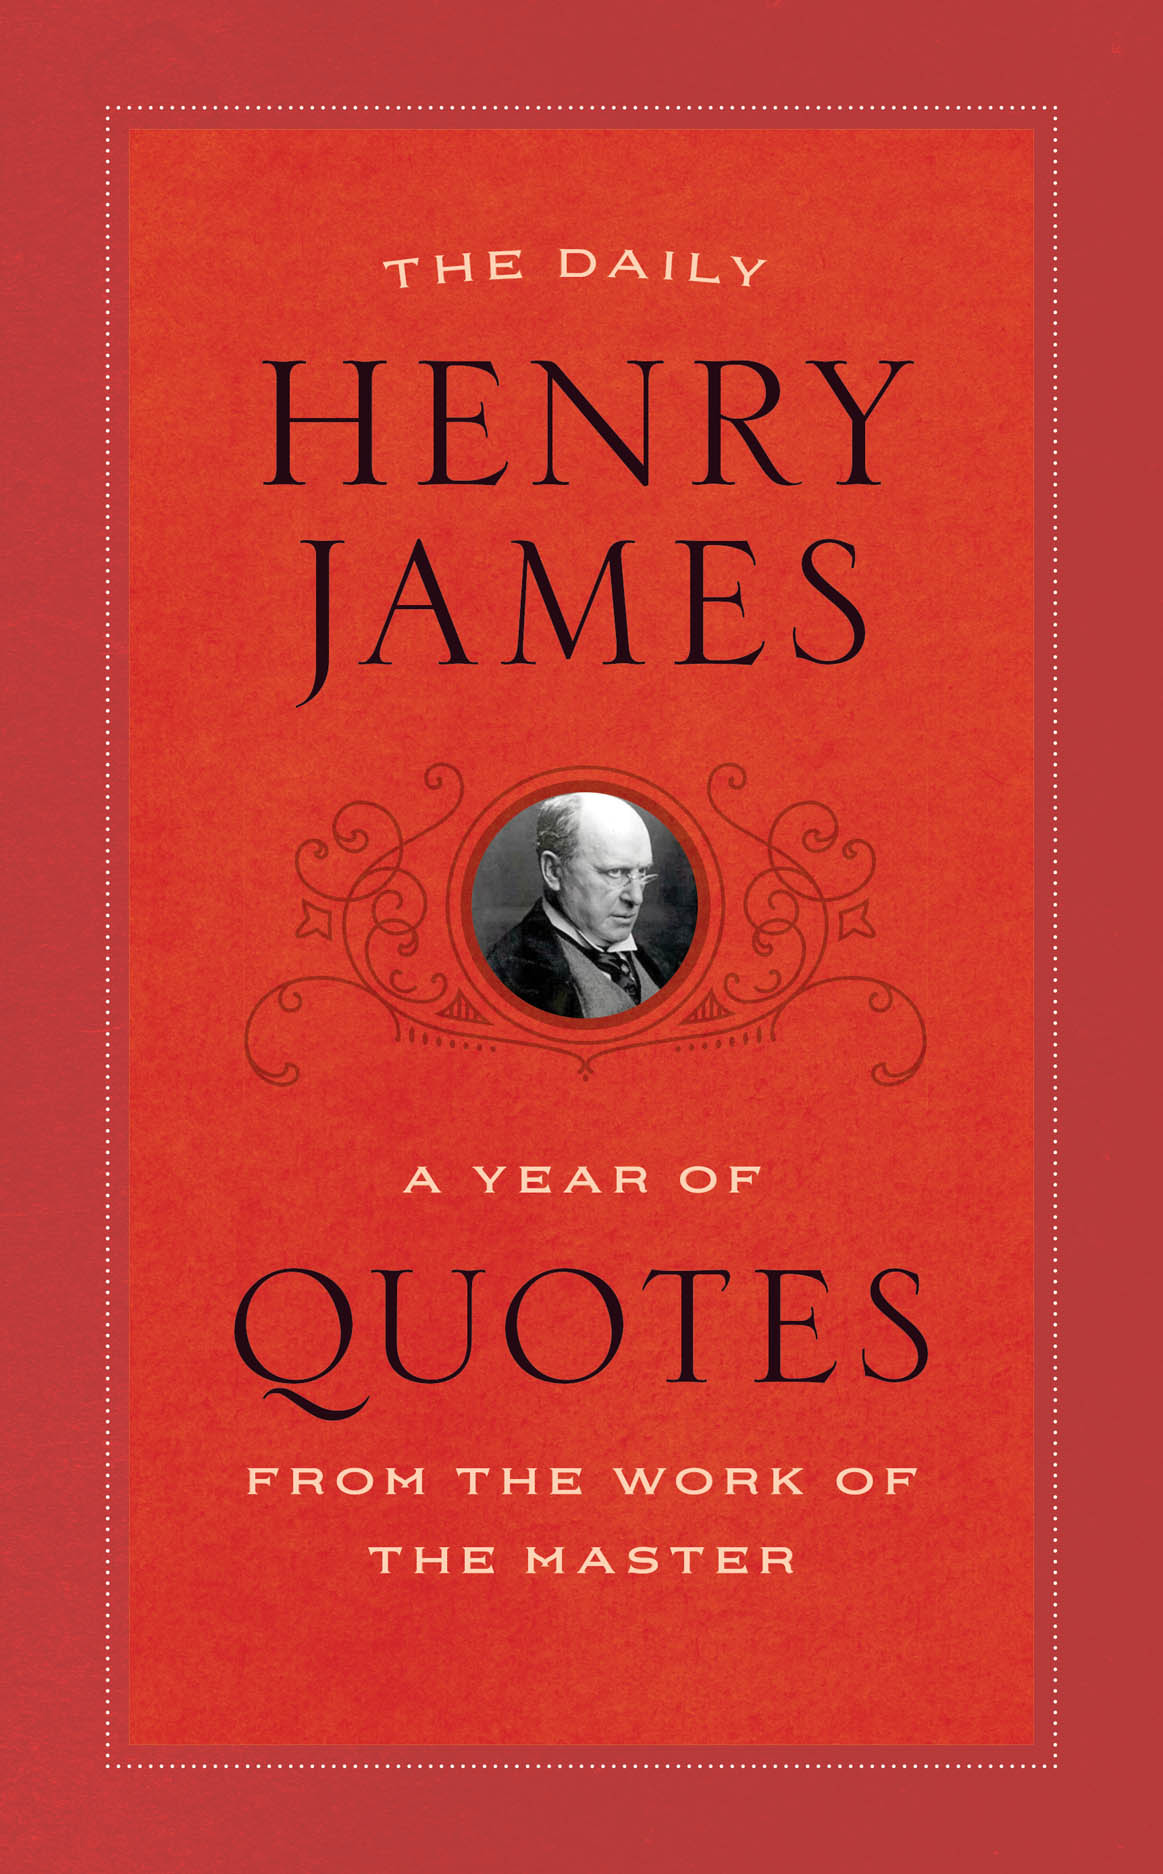 The Daily Henry James